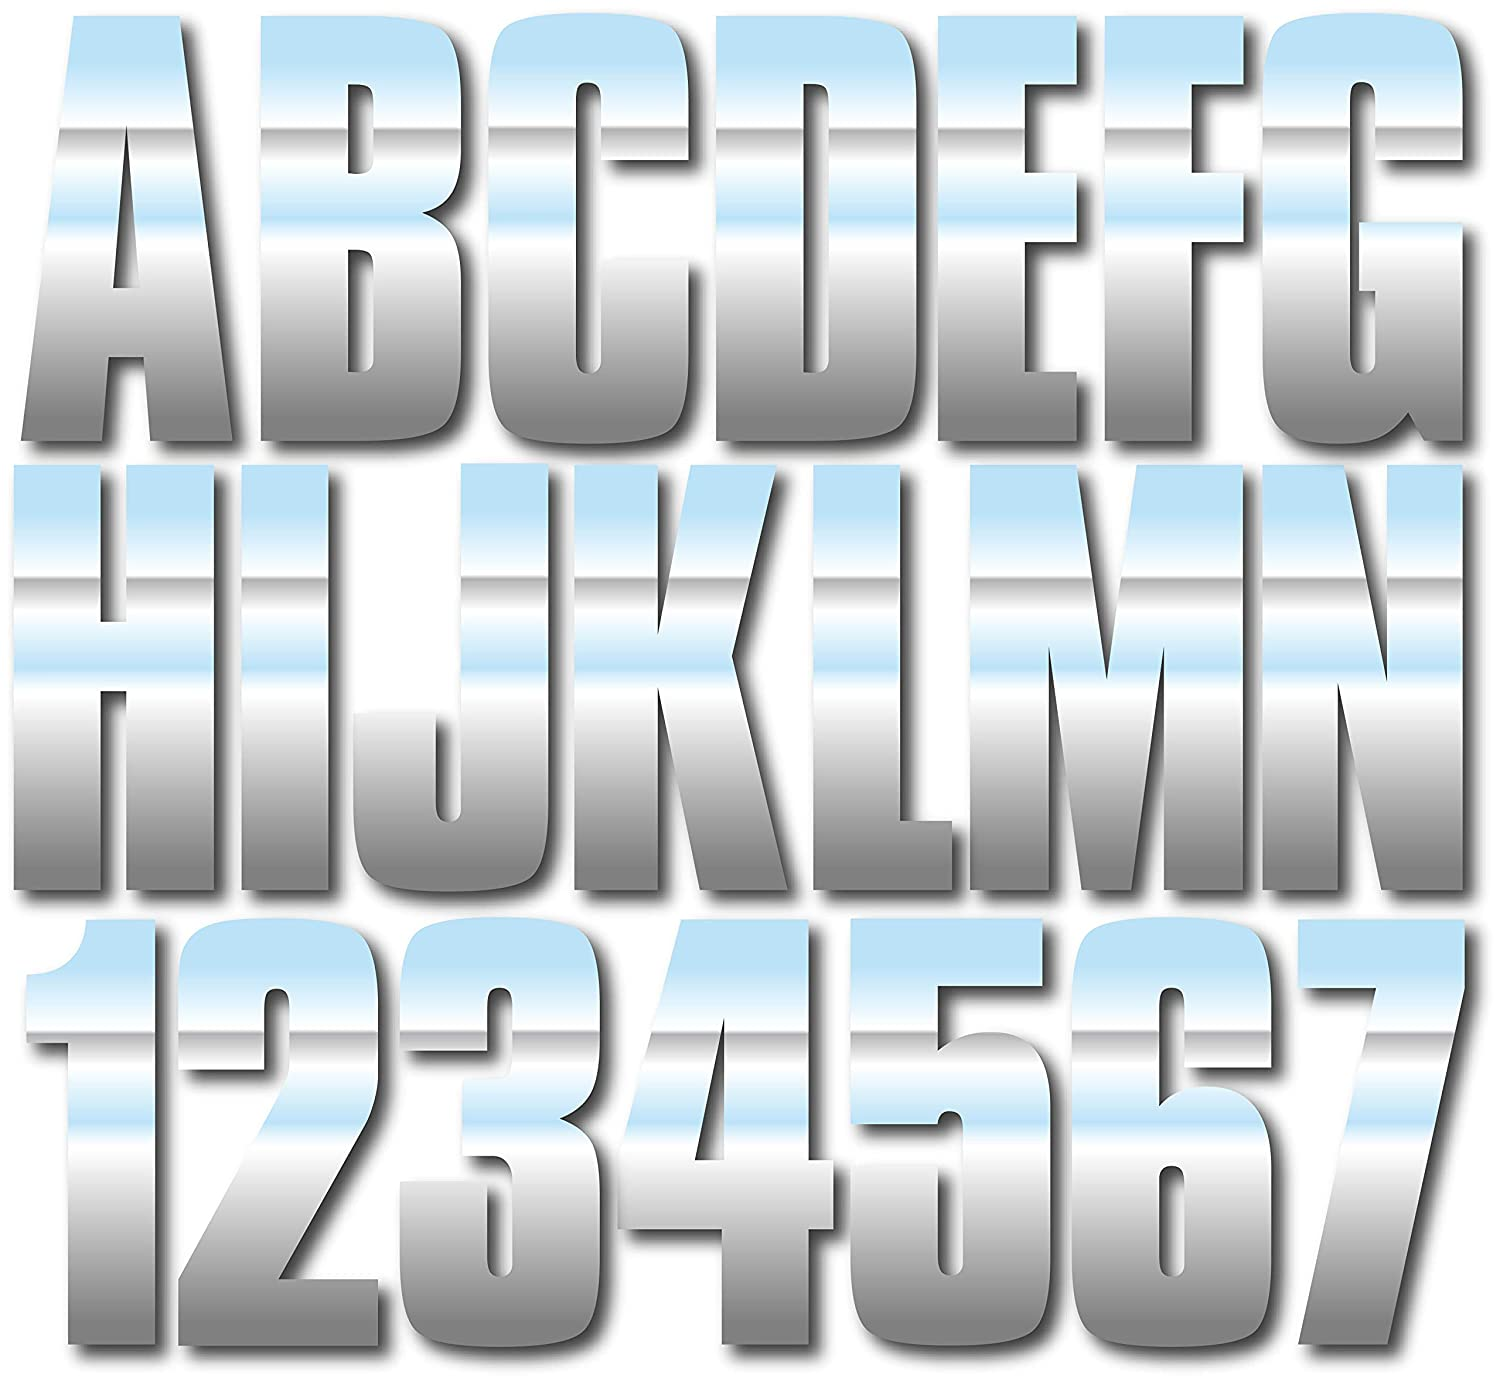 Stiffie Uniline Chrome 3 ID Kit Alpha-Numeric Registration Identification Numbers Stickers Decals for Boats /& Personal Watercraft